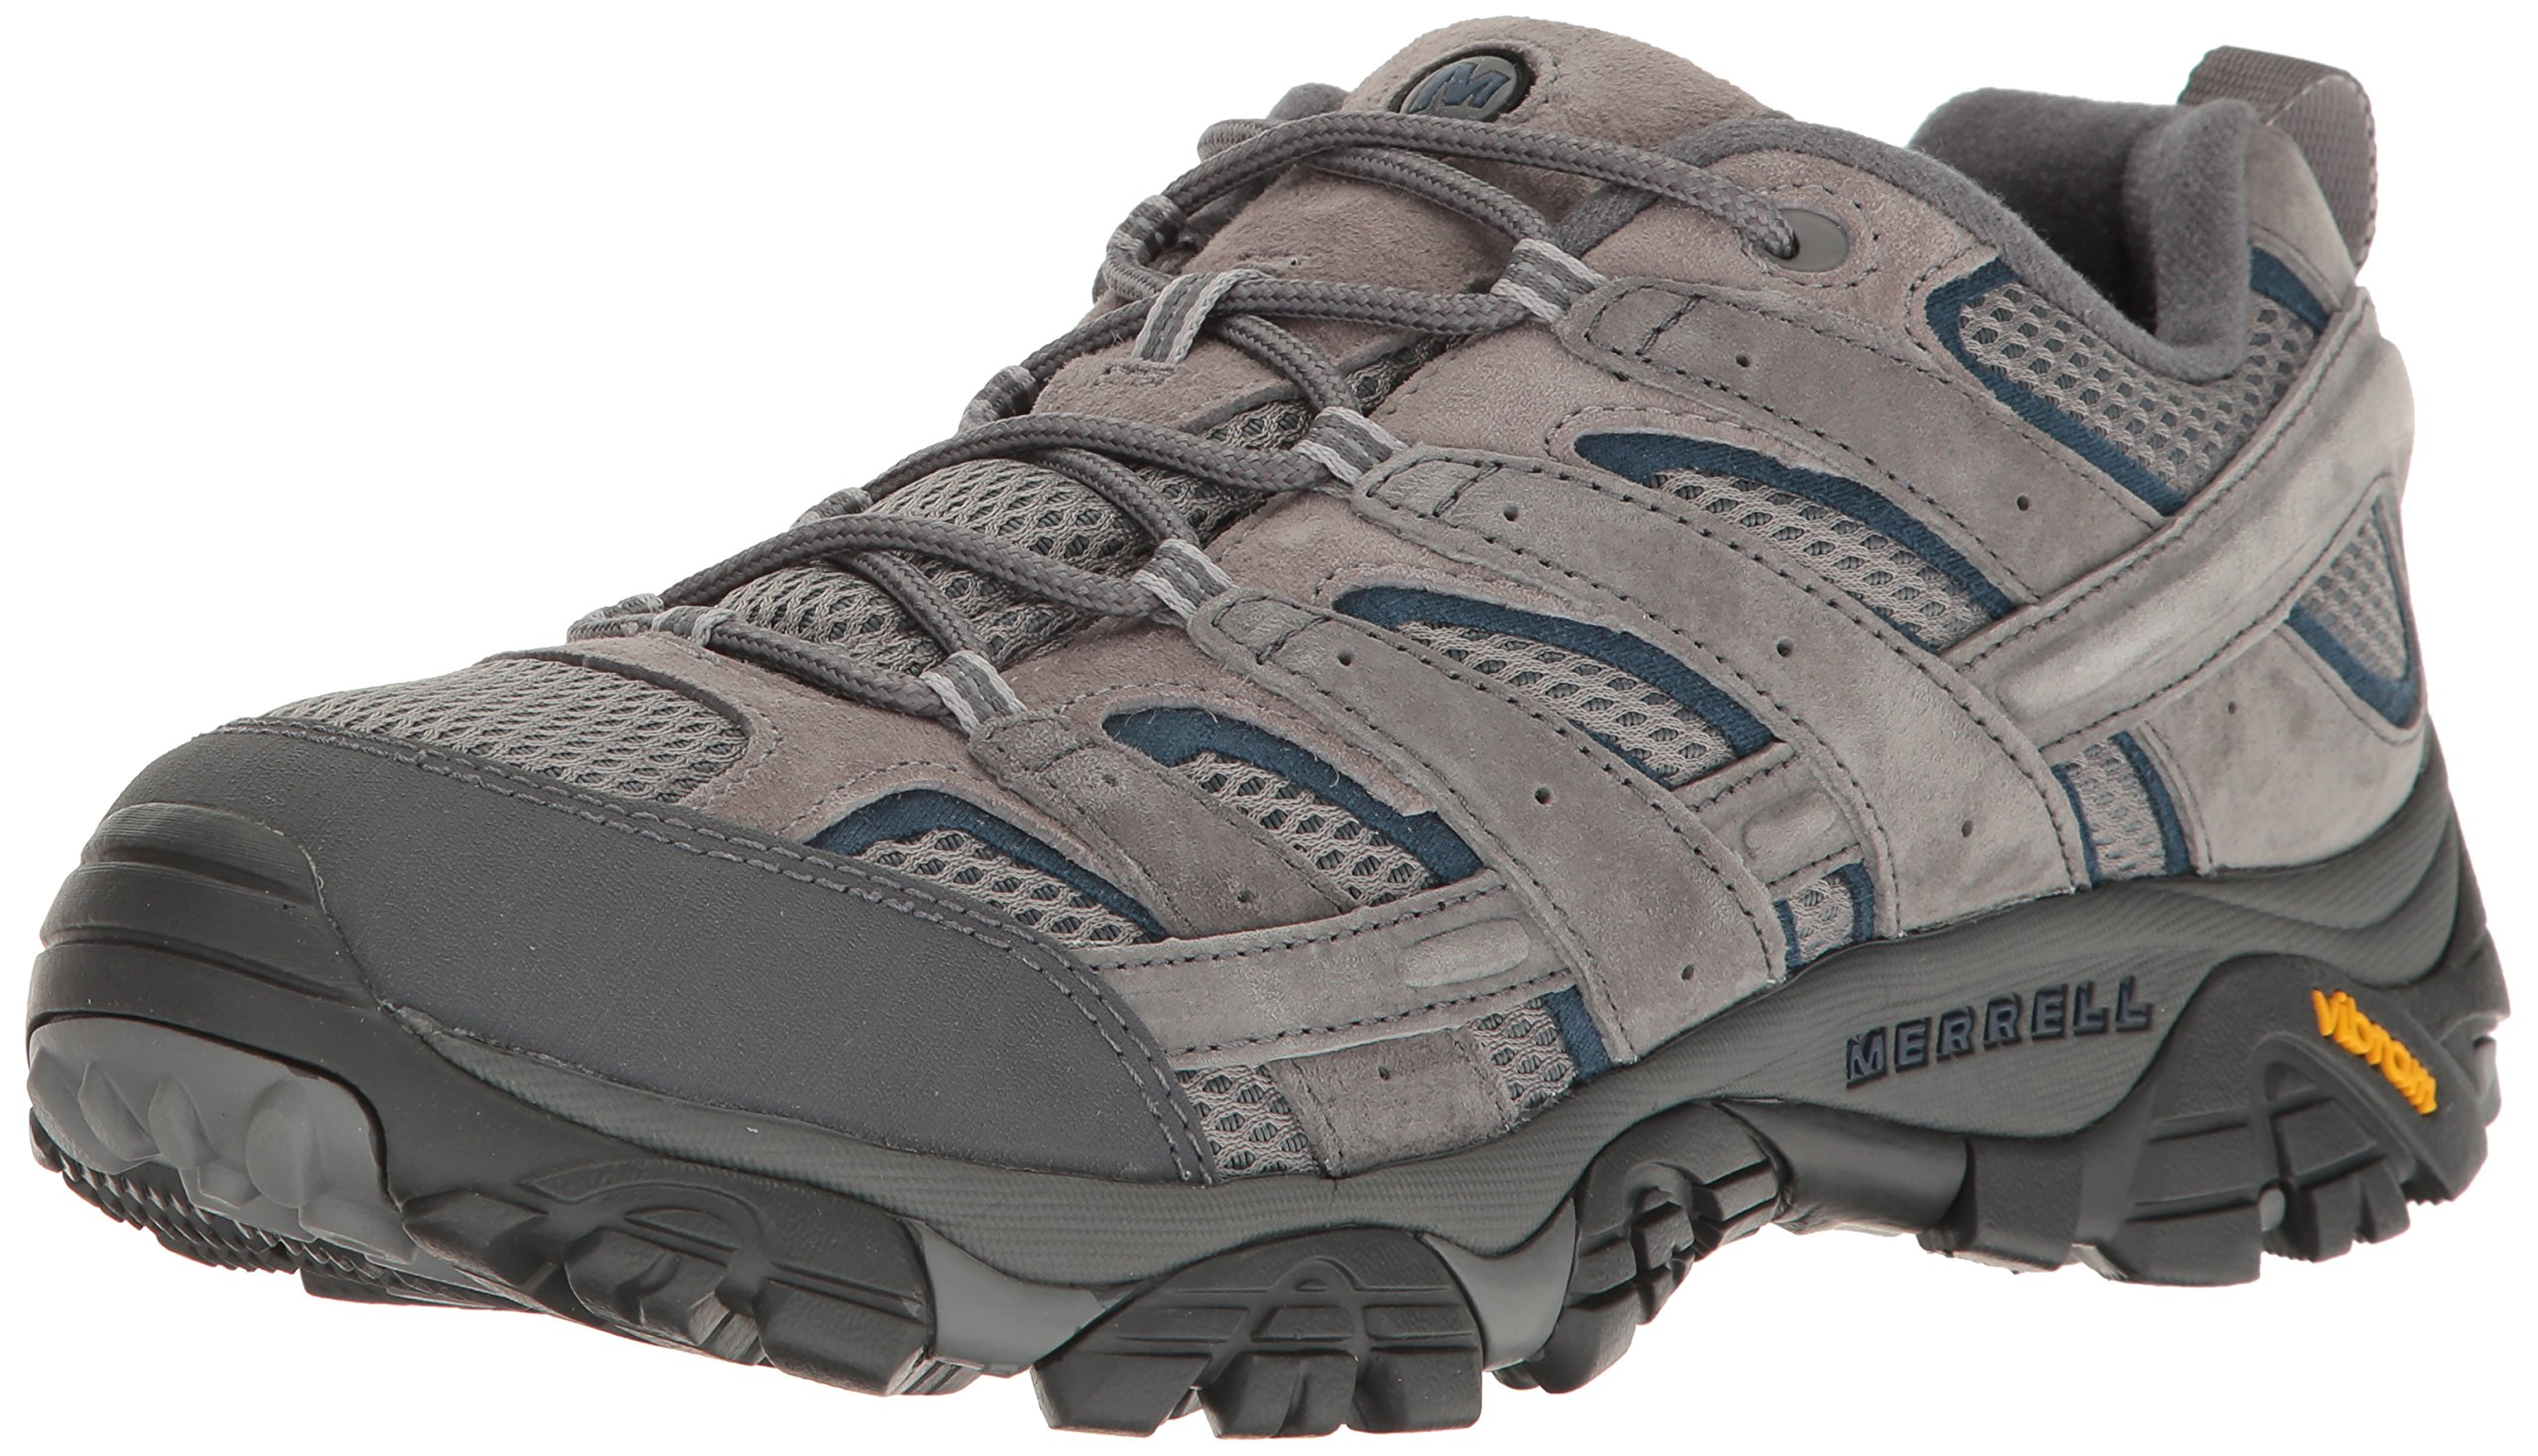 Merrell Moab 2 Mother of All Boots Ventilator Men 7 Castlerock